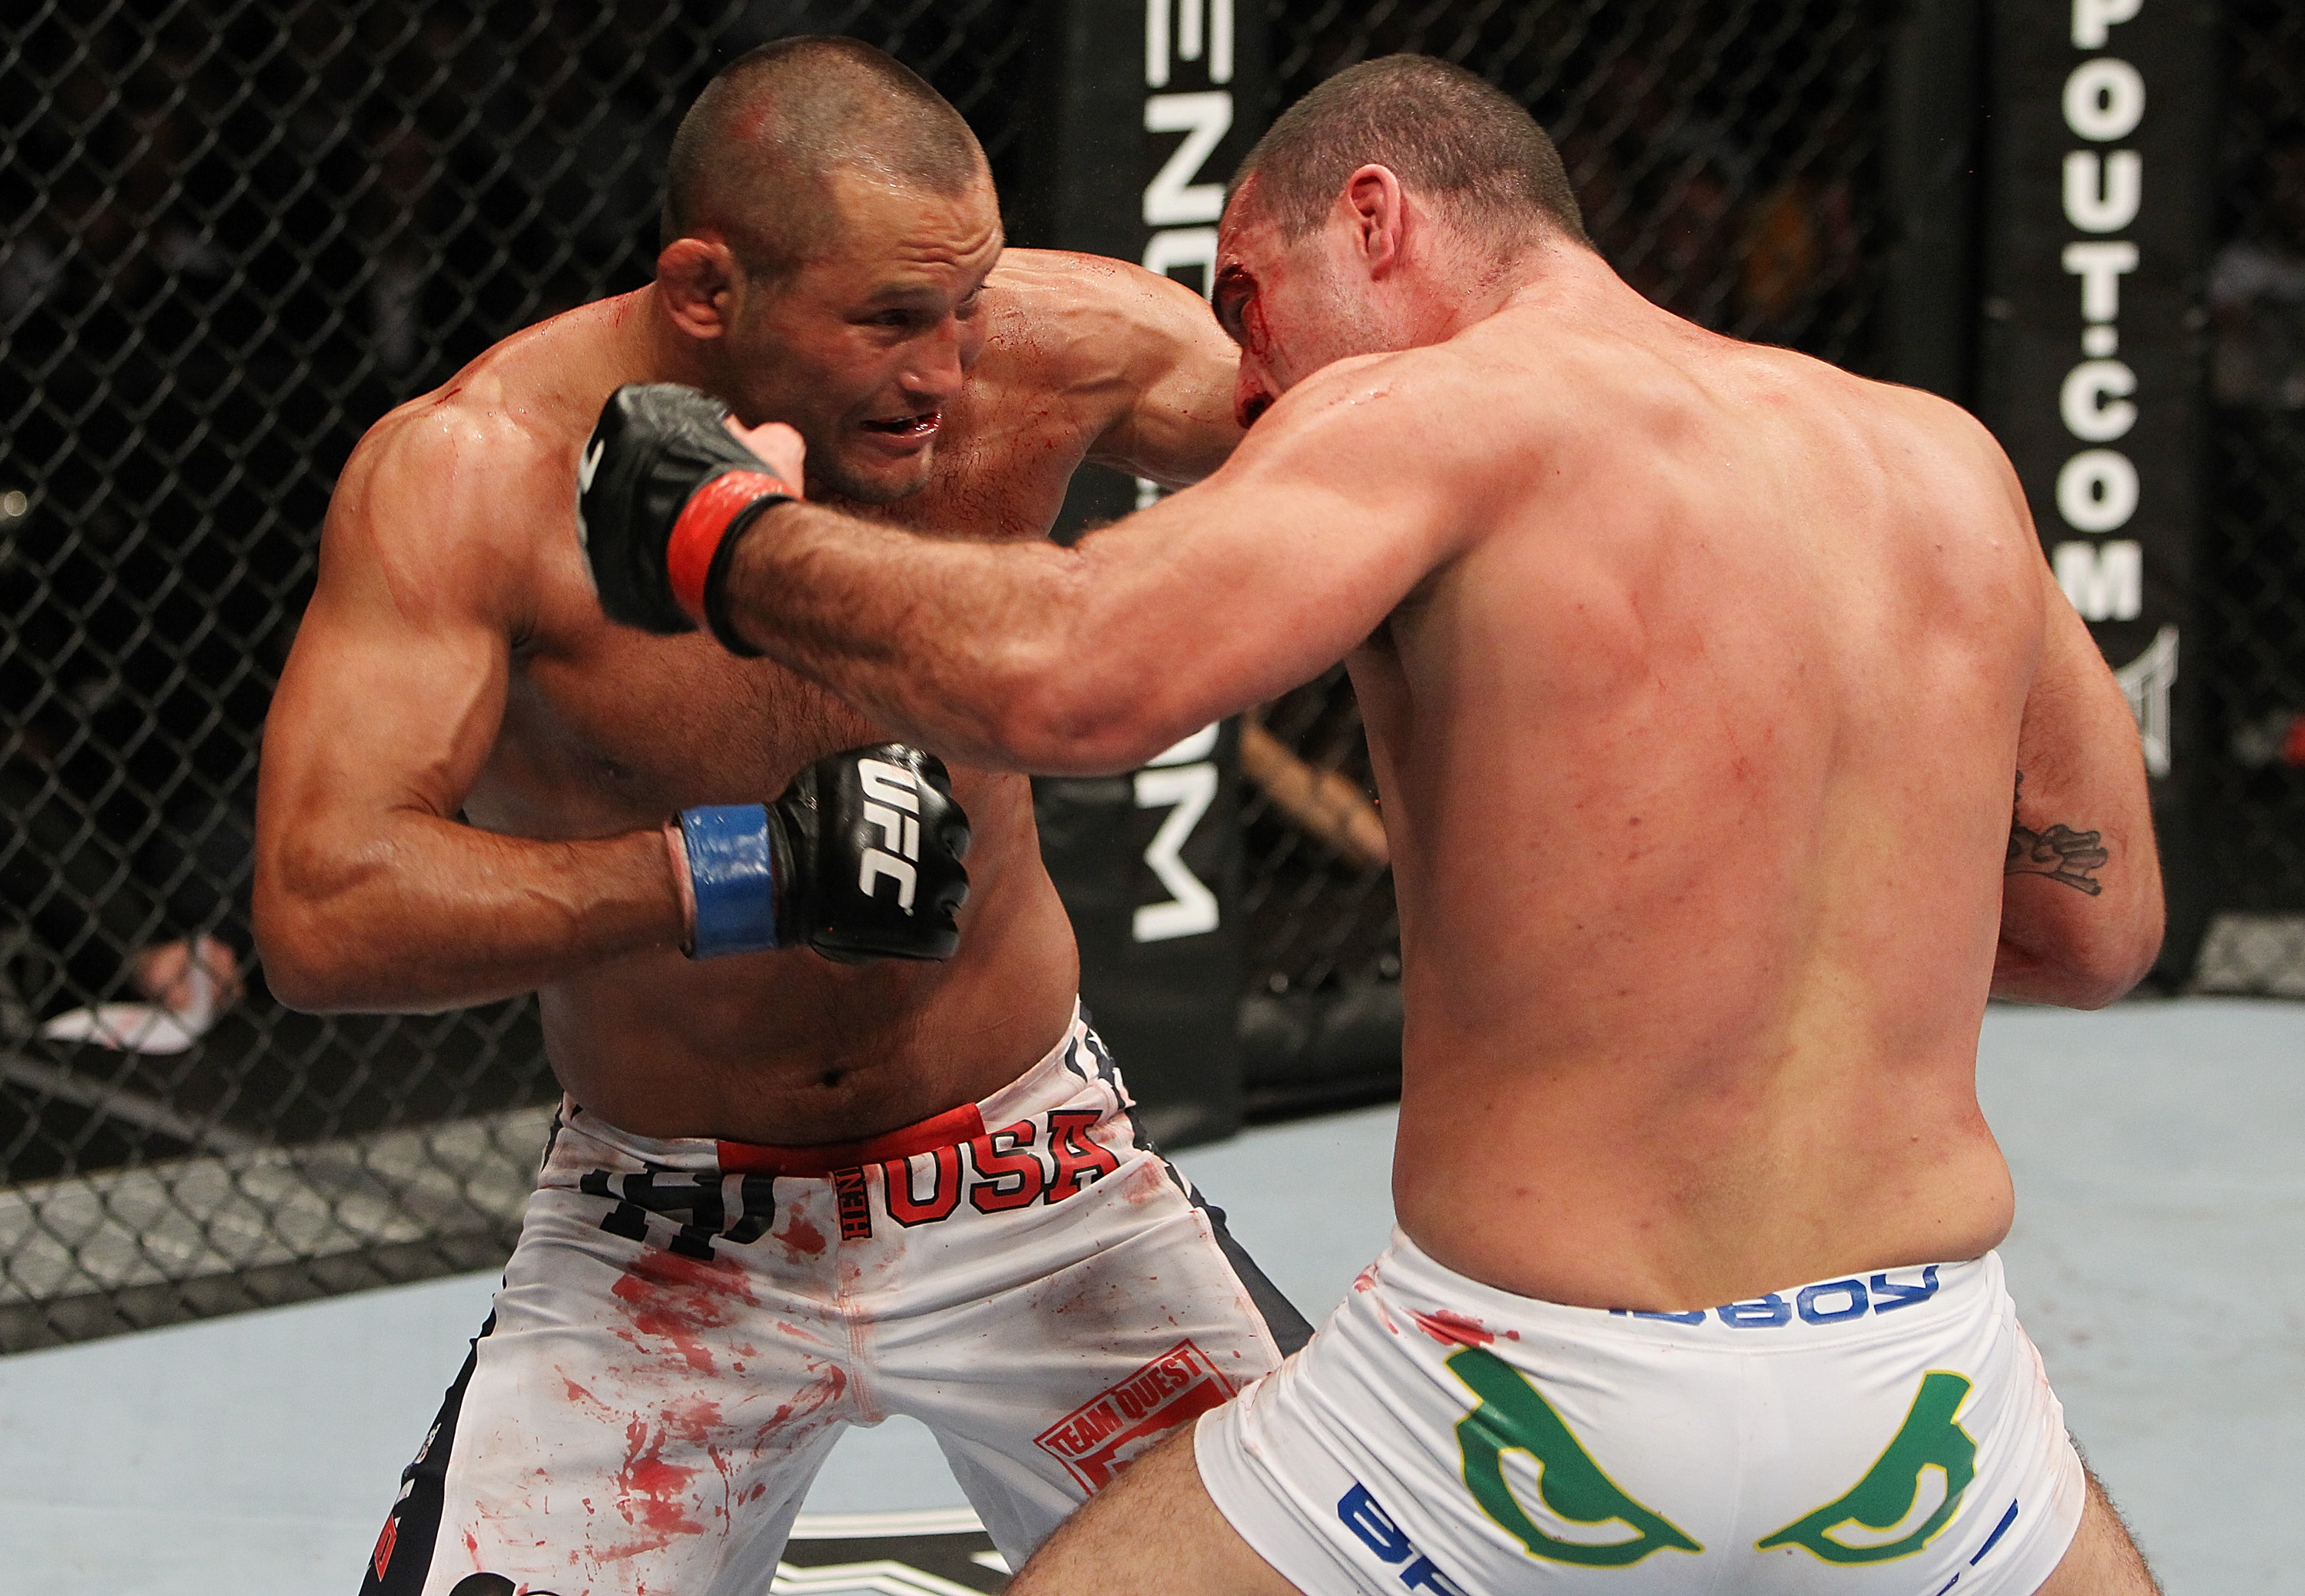 Dan Henderson vs. Mauricio &quot;Shogun&quot; Rua